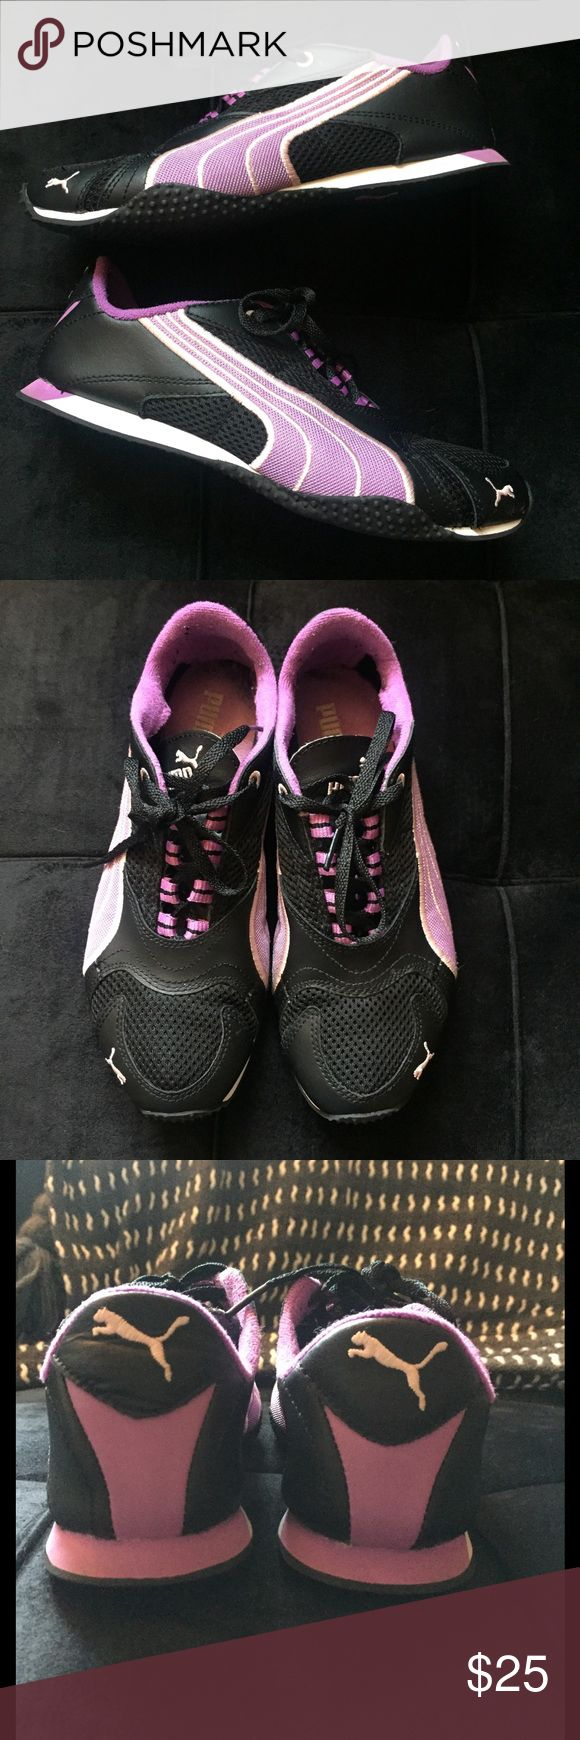 PUMA Lightweight Mesh H Street Sneakers Women's H Street sneakers in black & purple. Lightweight mesh. Black laces. In good condition. NO TRADES. Also available in white & green option in my closet! Puma Shoes Athletic Shoes